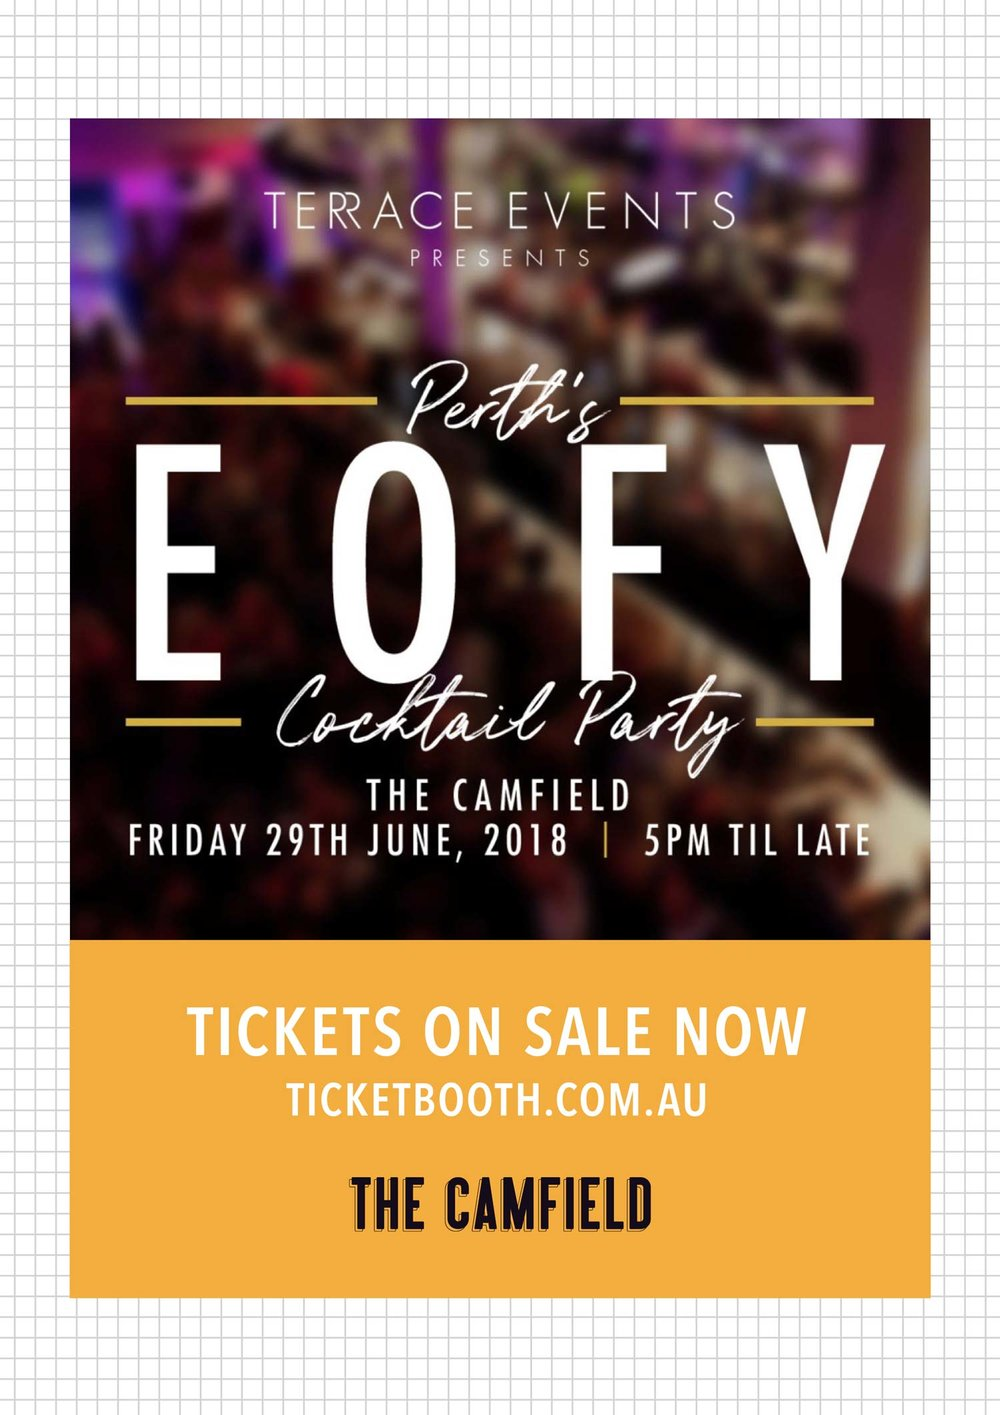 Perth's-EOFY-Party-Flyer-Banner.jpg